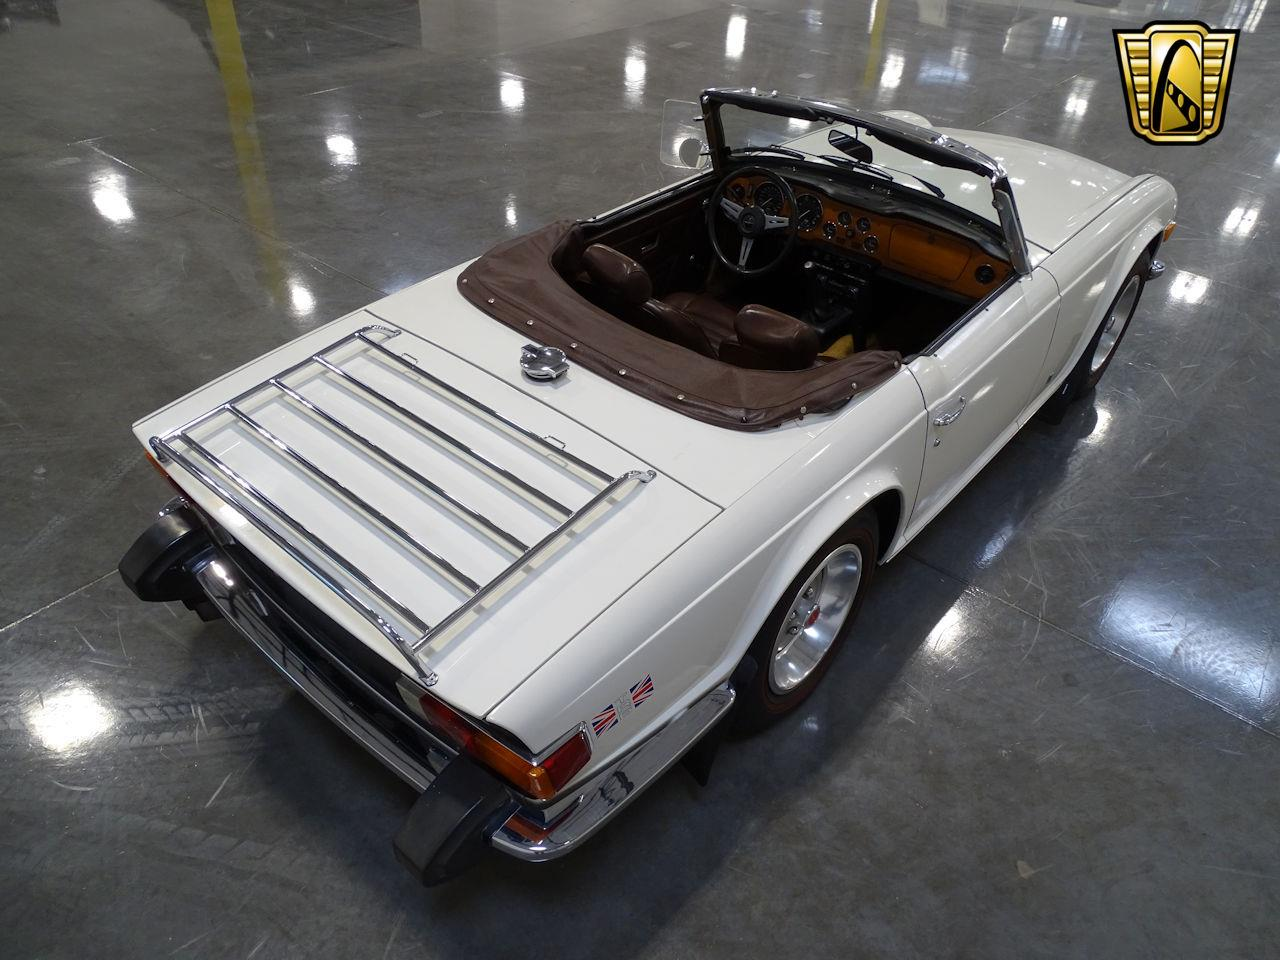 Large Picture of '74 TR6 located in Arizona - $18,995.00 Offered by Gateway Classic Cars - Scottsdale - MCYM